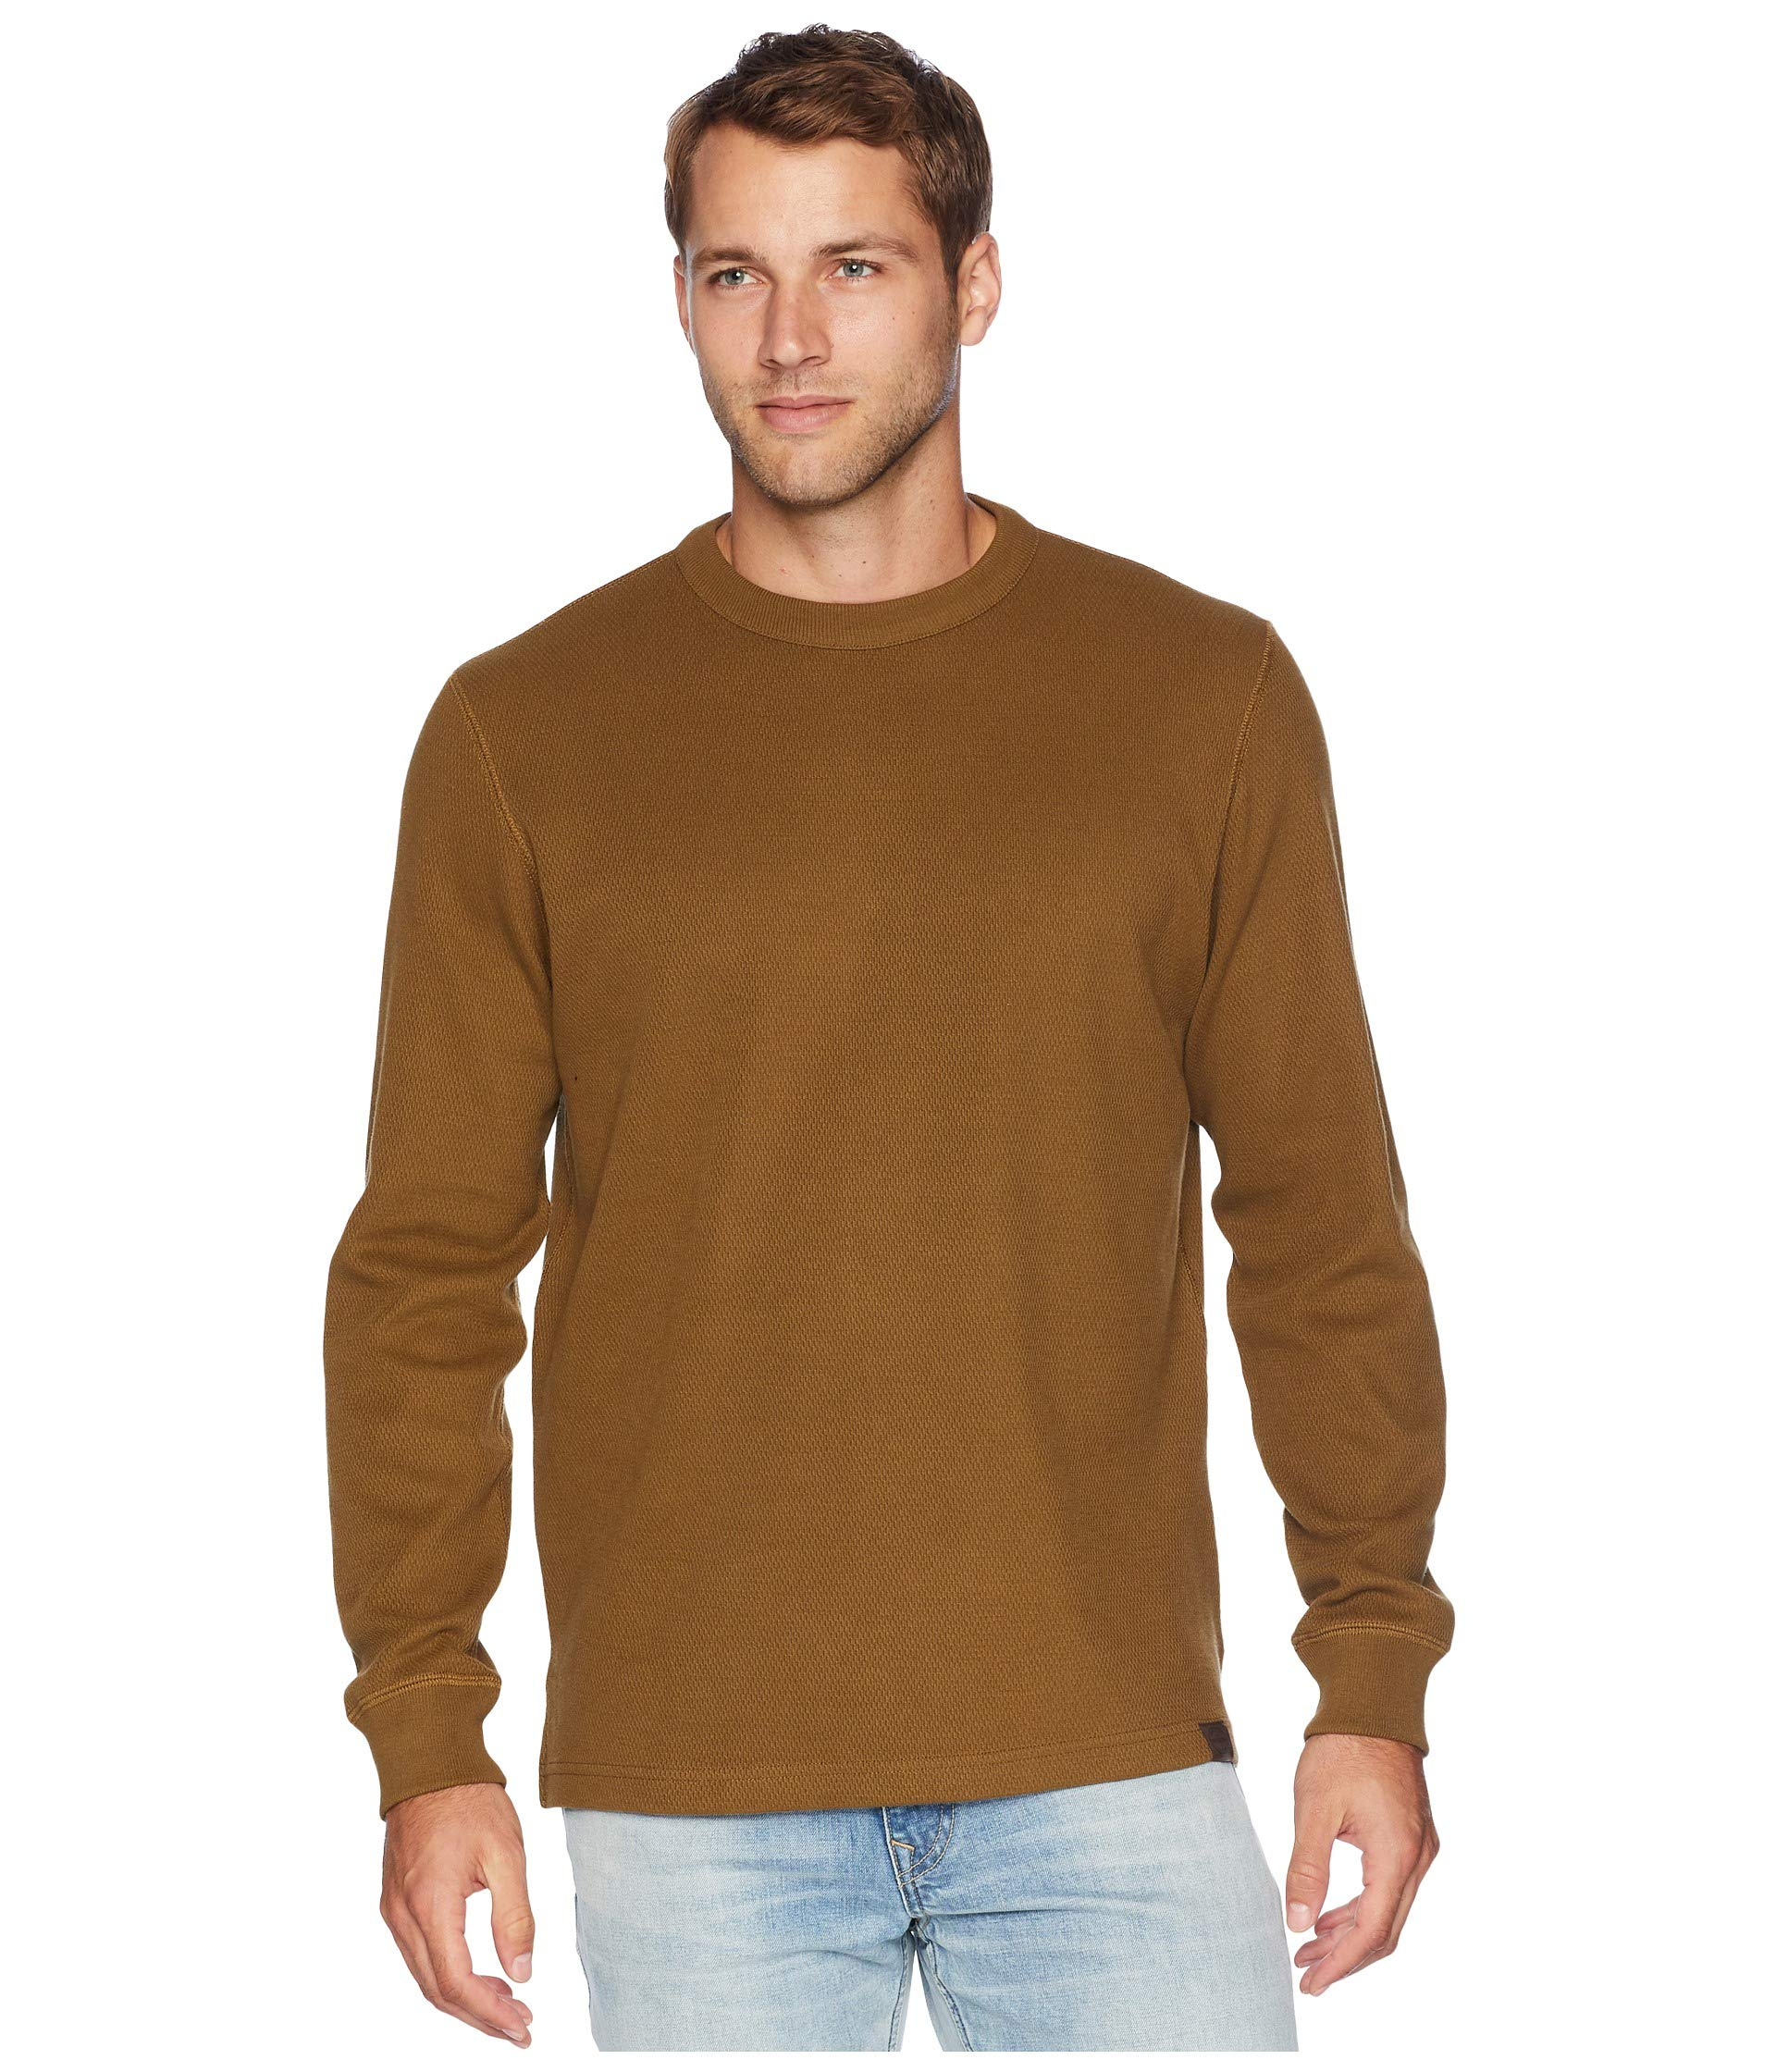 Filson Men's Waffle Knit Thermal Crew Neck Olive Large by Filson